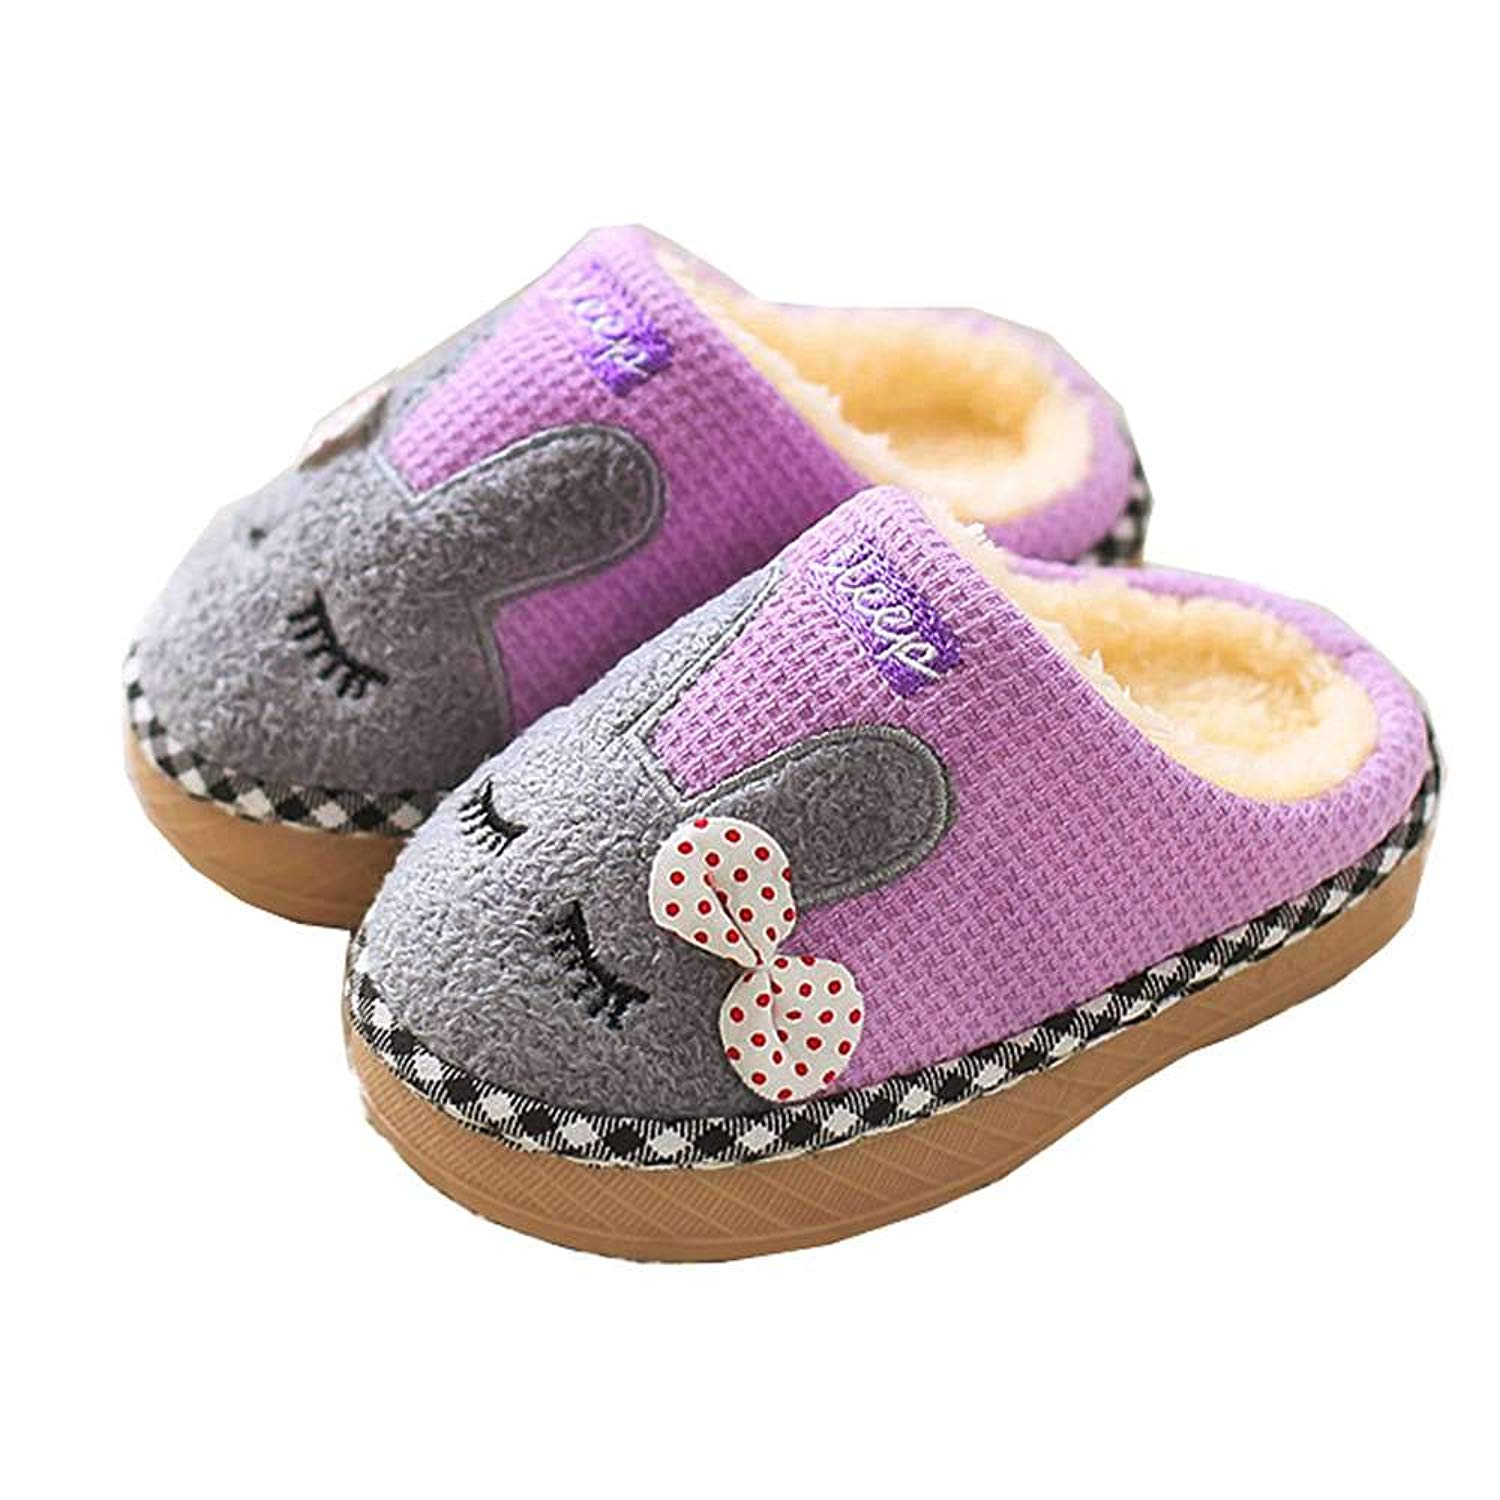 bdd9fc1fc1d Get Quotations · Kids Home Slippers Girls Boys Toddler Cute Bunny Fur Warm Winter  Indoor Shoes